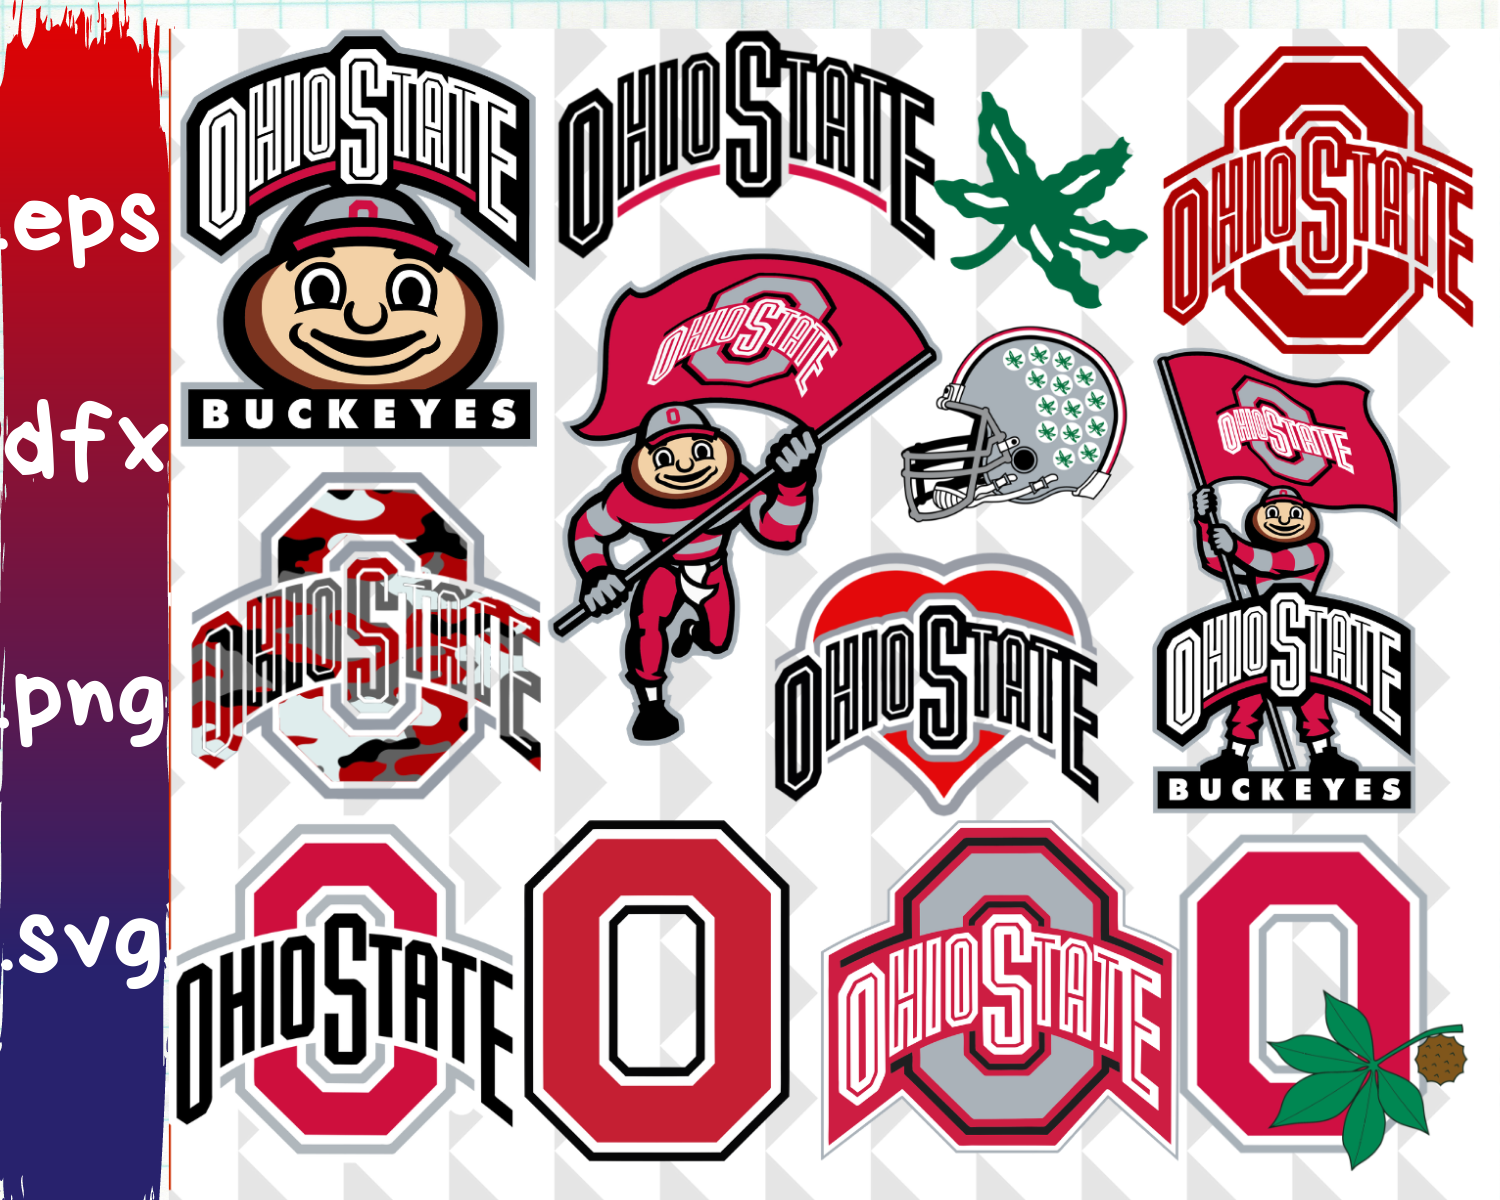 Ohio State Buckeyes, Ohio State Buckeyes svg, Ohio State.